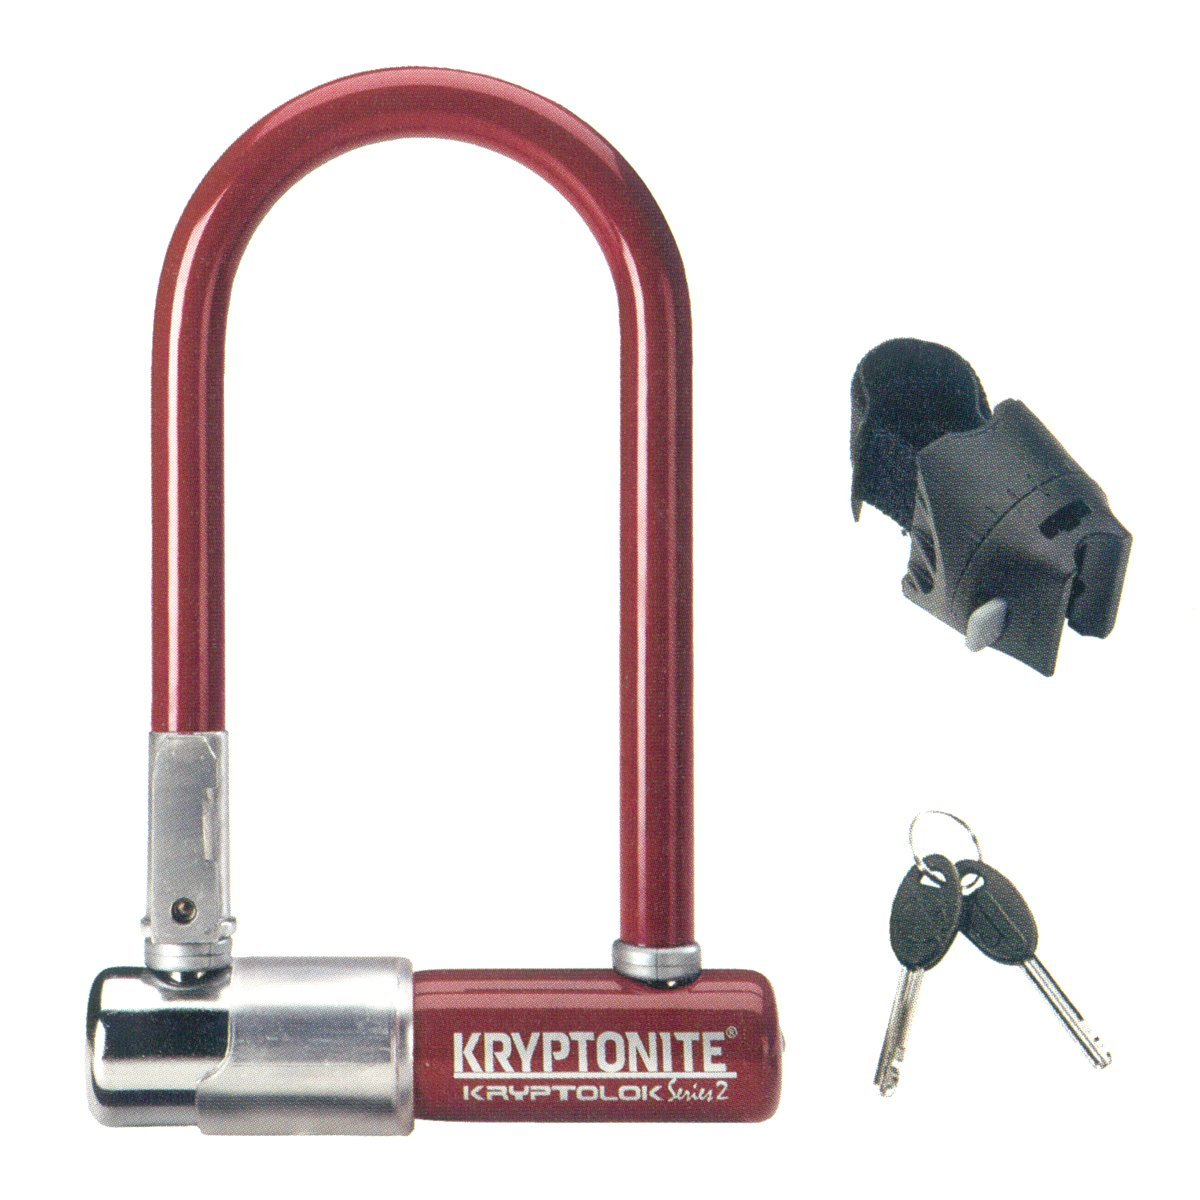 Lucchetto Kryptonite U-Lock Kryptolok Series 2 Mini-7 Colour Rosso Merlot